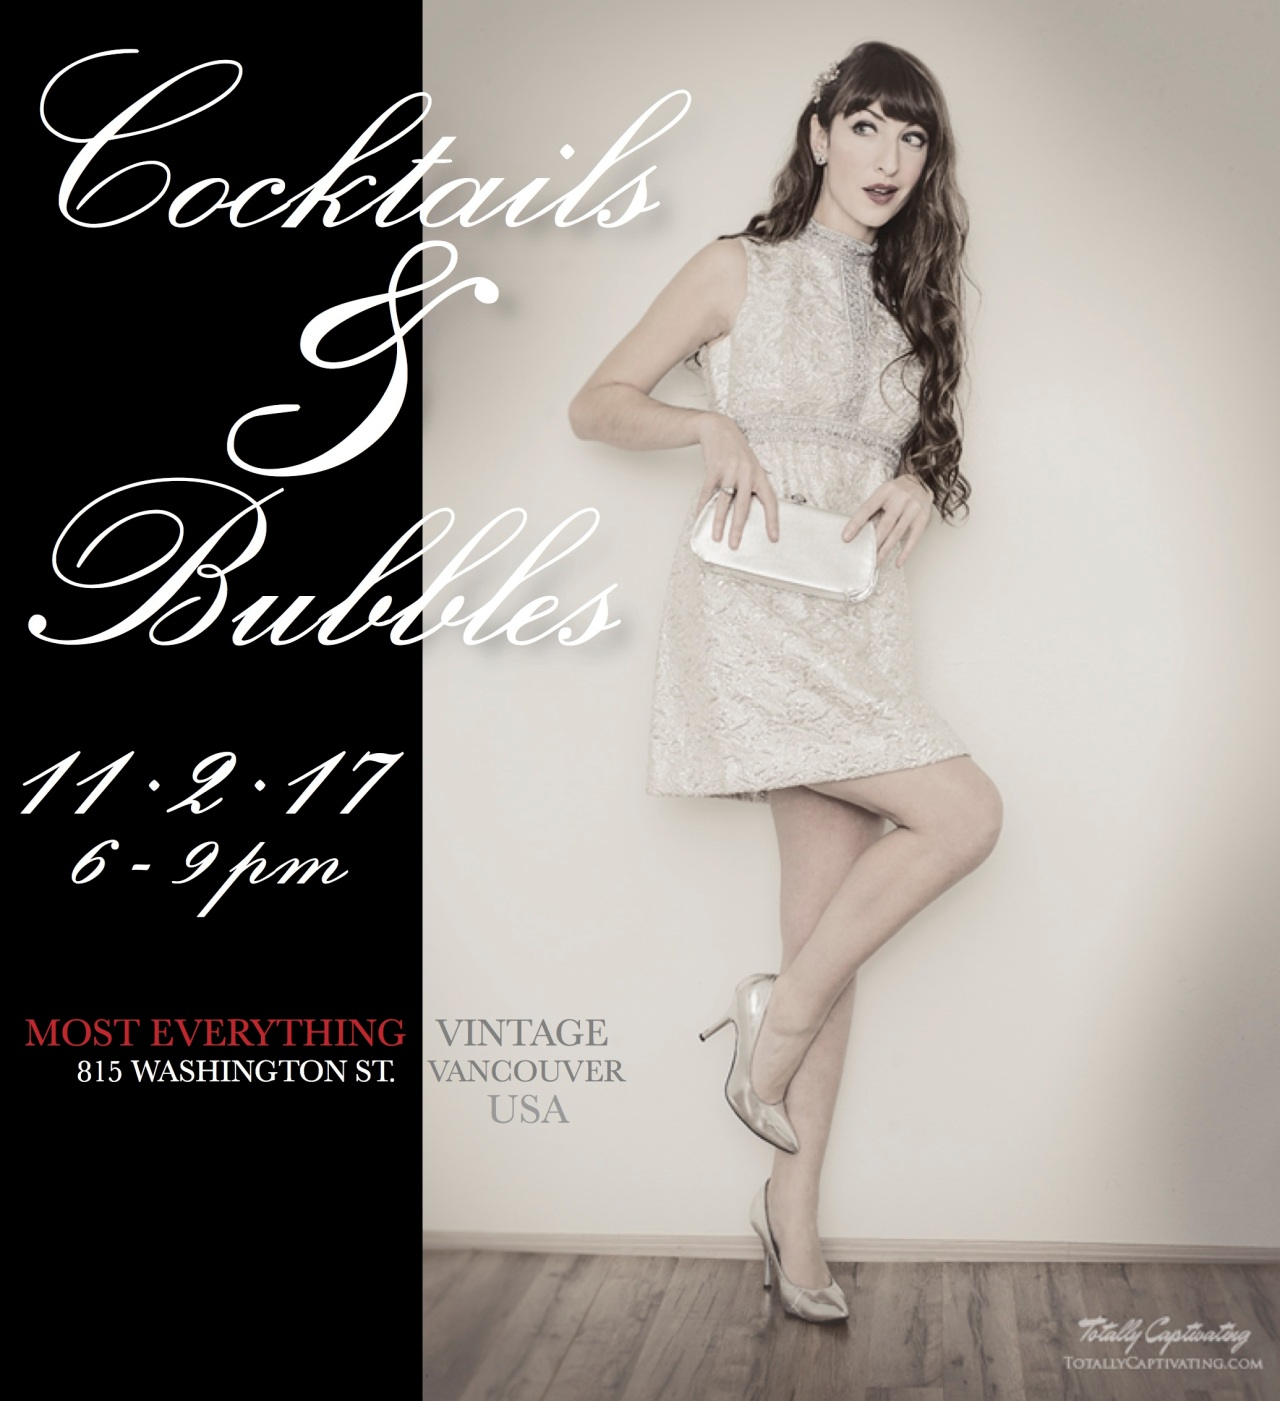 Cocktails and bubbles 17-1